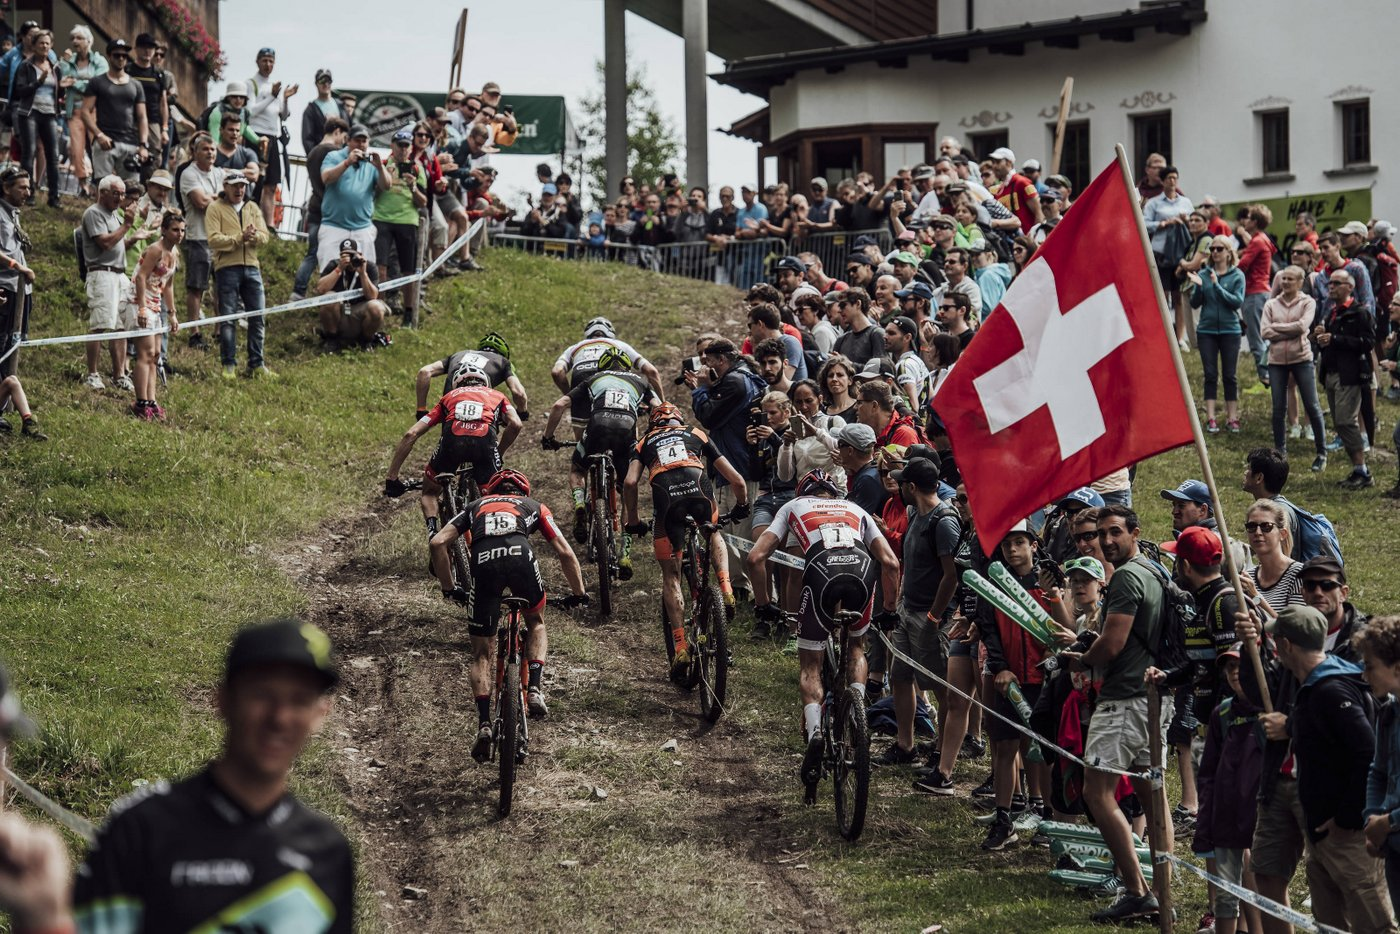 Competitors perform at UCI XCO World Cup in Lenzerheide, Switzerland on July 9th, 2017 // Bartek Wolinski/Red Bull Content Pool // P-20170709-04211 // Usage for editorial use only // Please go to www.redbullcontentpool.com for further information. //